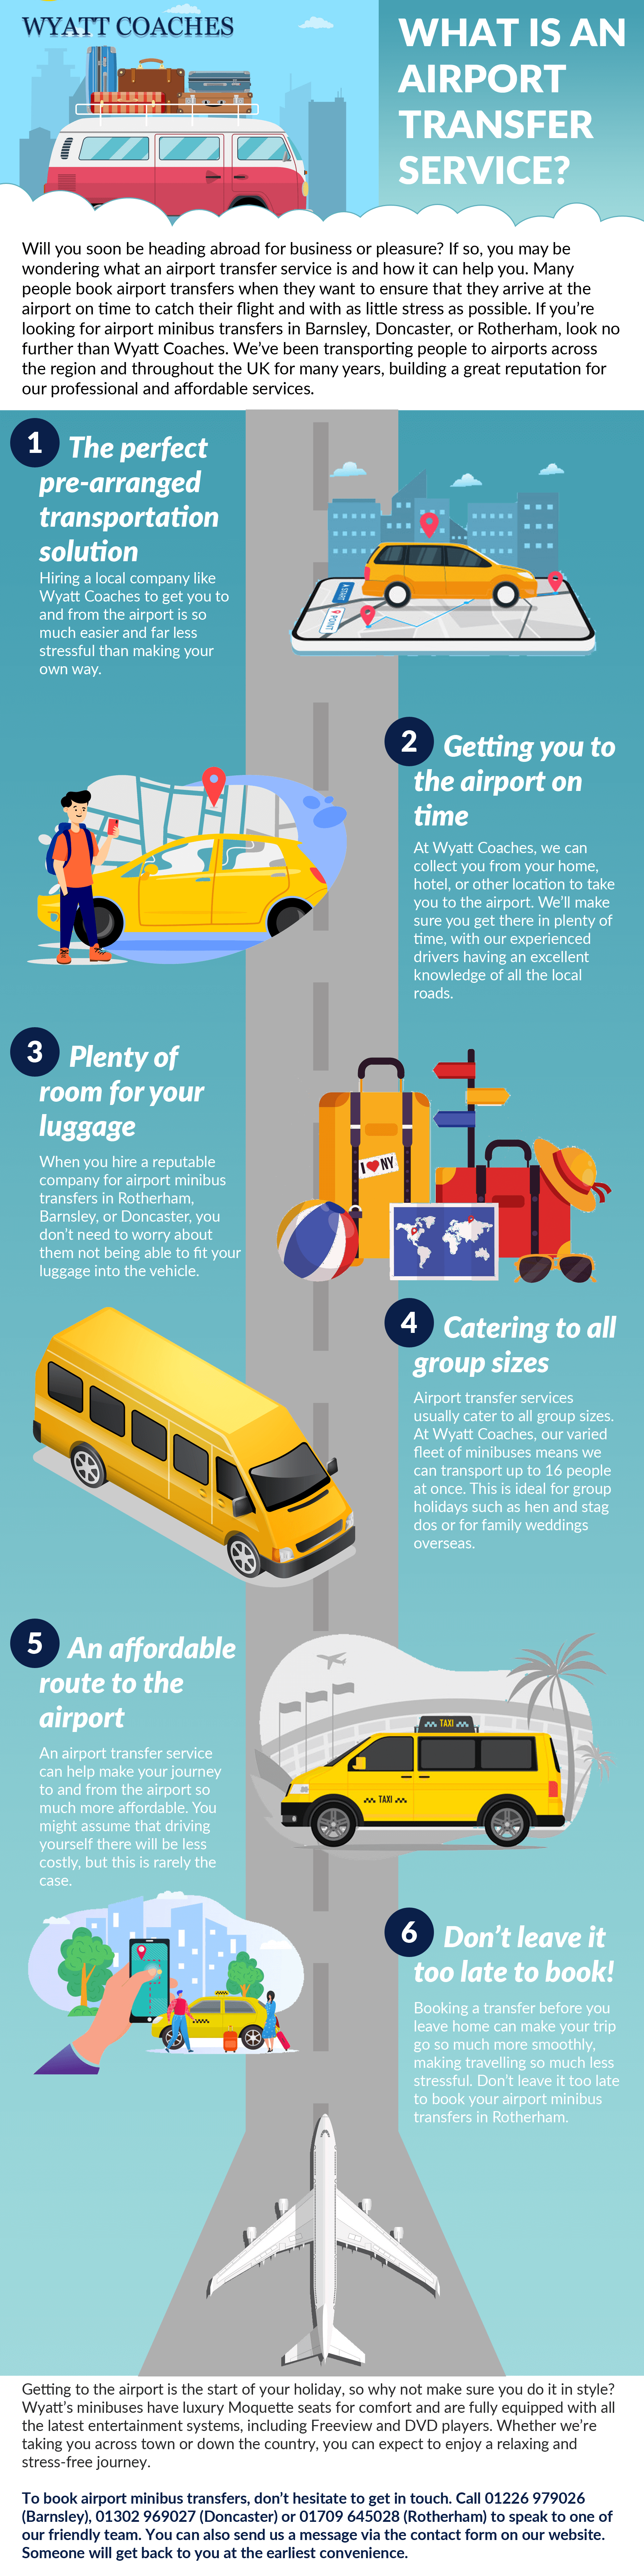 What is an airport transfer service [infographic]